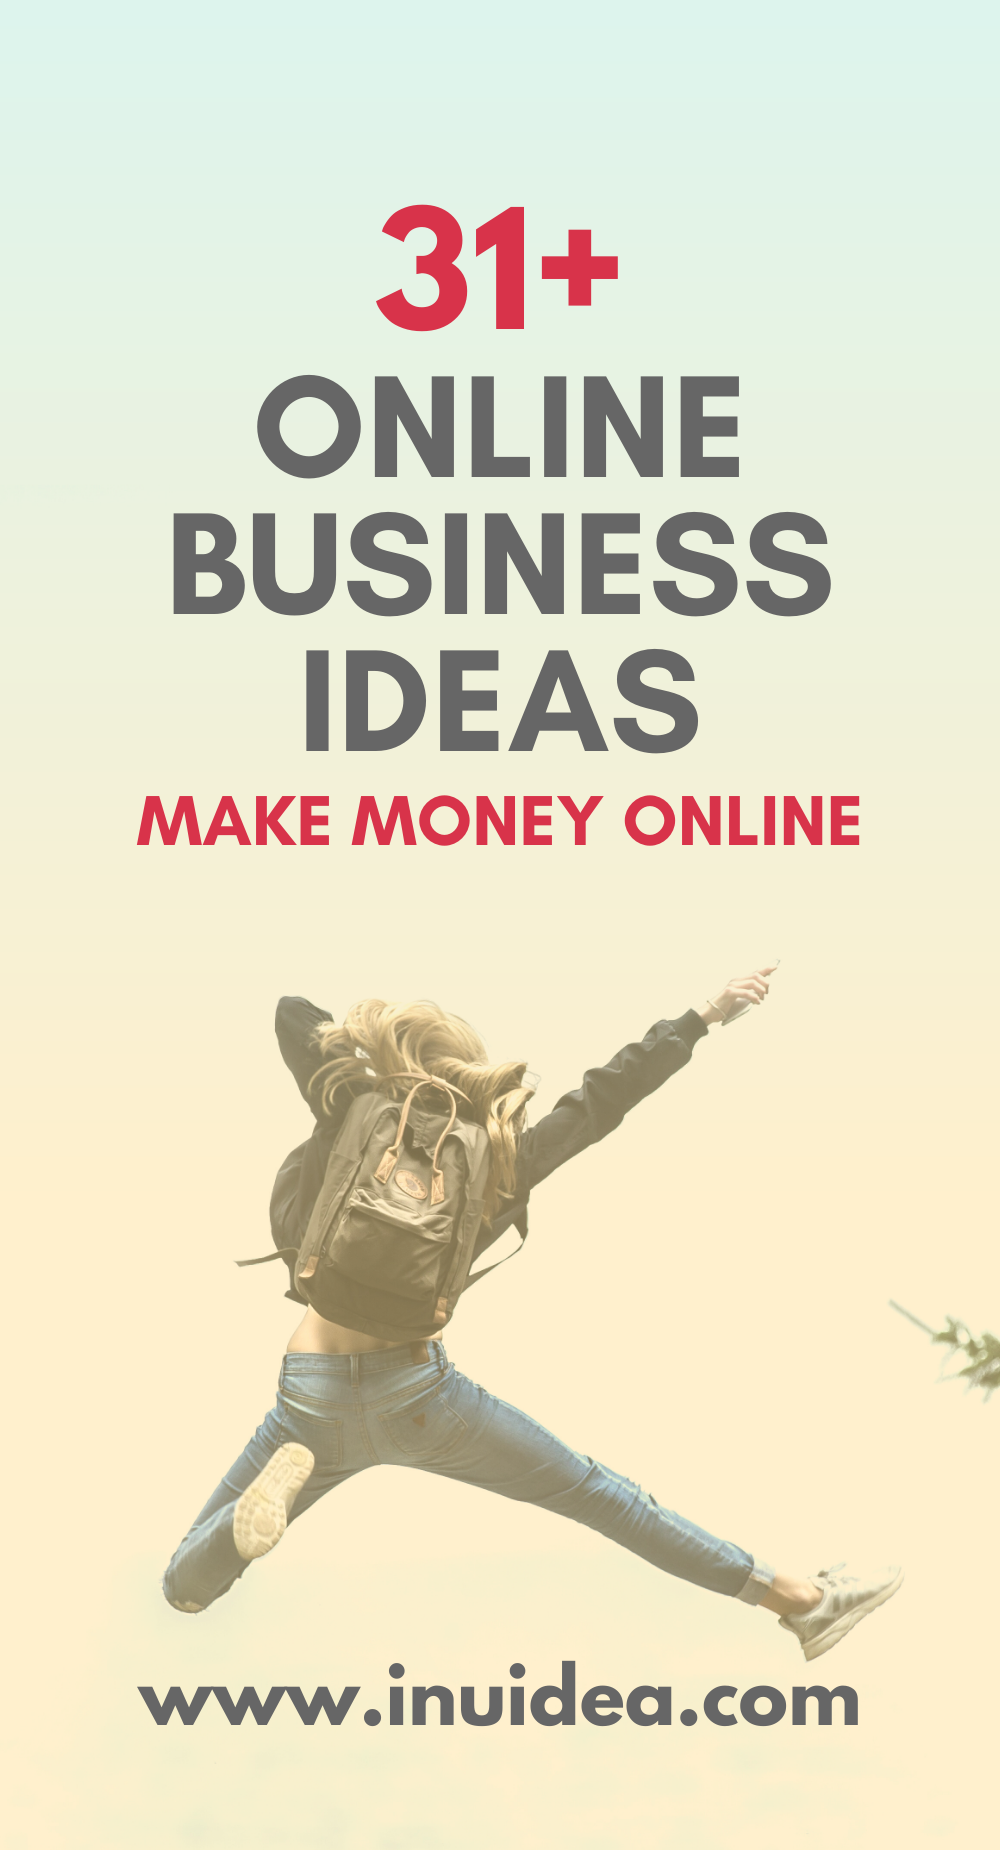 31+ Proven Online Business Ideas That Work in 2020